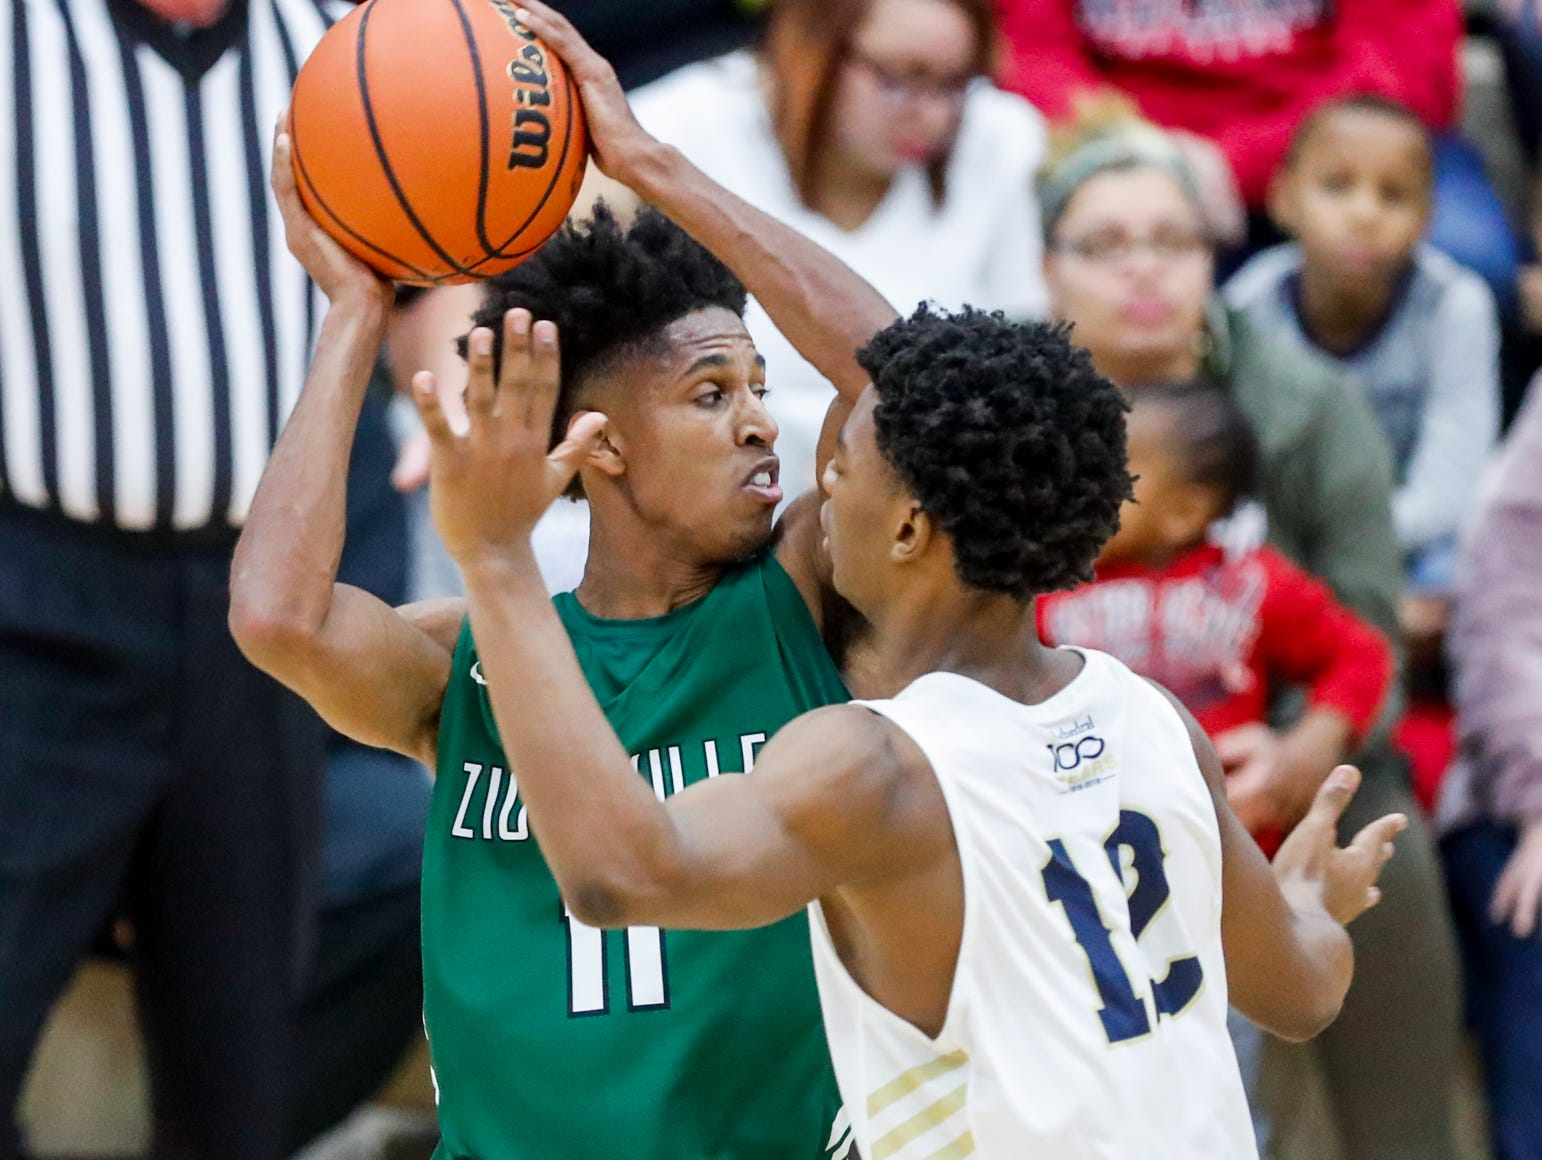 Cathedral High School's guard Tayshawn Comer (12) guards Zionsville Community High School's Isaiah Thompson (11), during a Tip Off Classic game between Cathedral High School and Zionsville Community High School, held at the Southport Fieldhouse, on Saturday, Dec. 8, 2018.